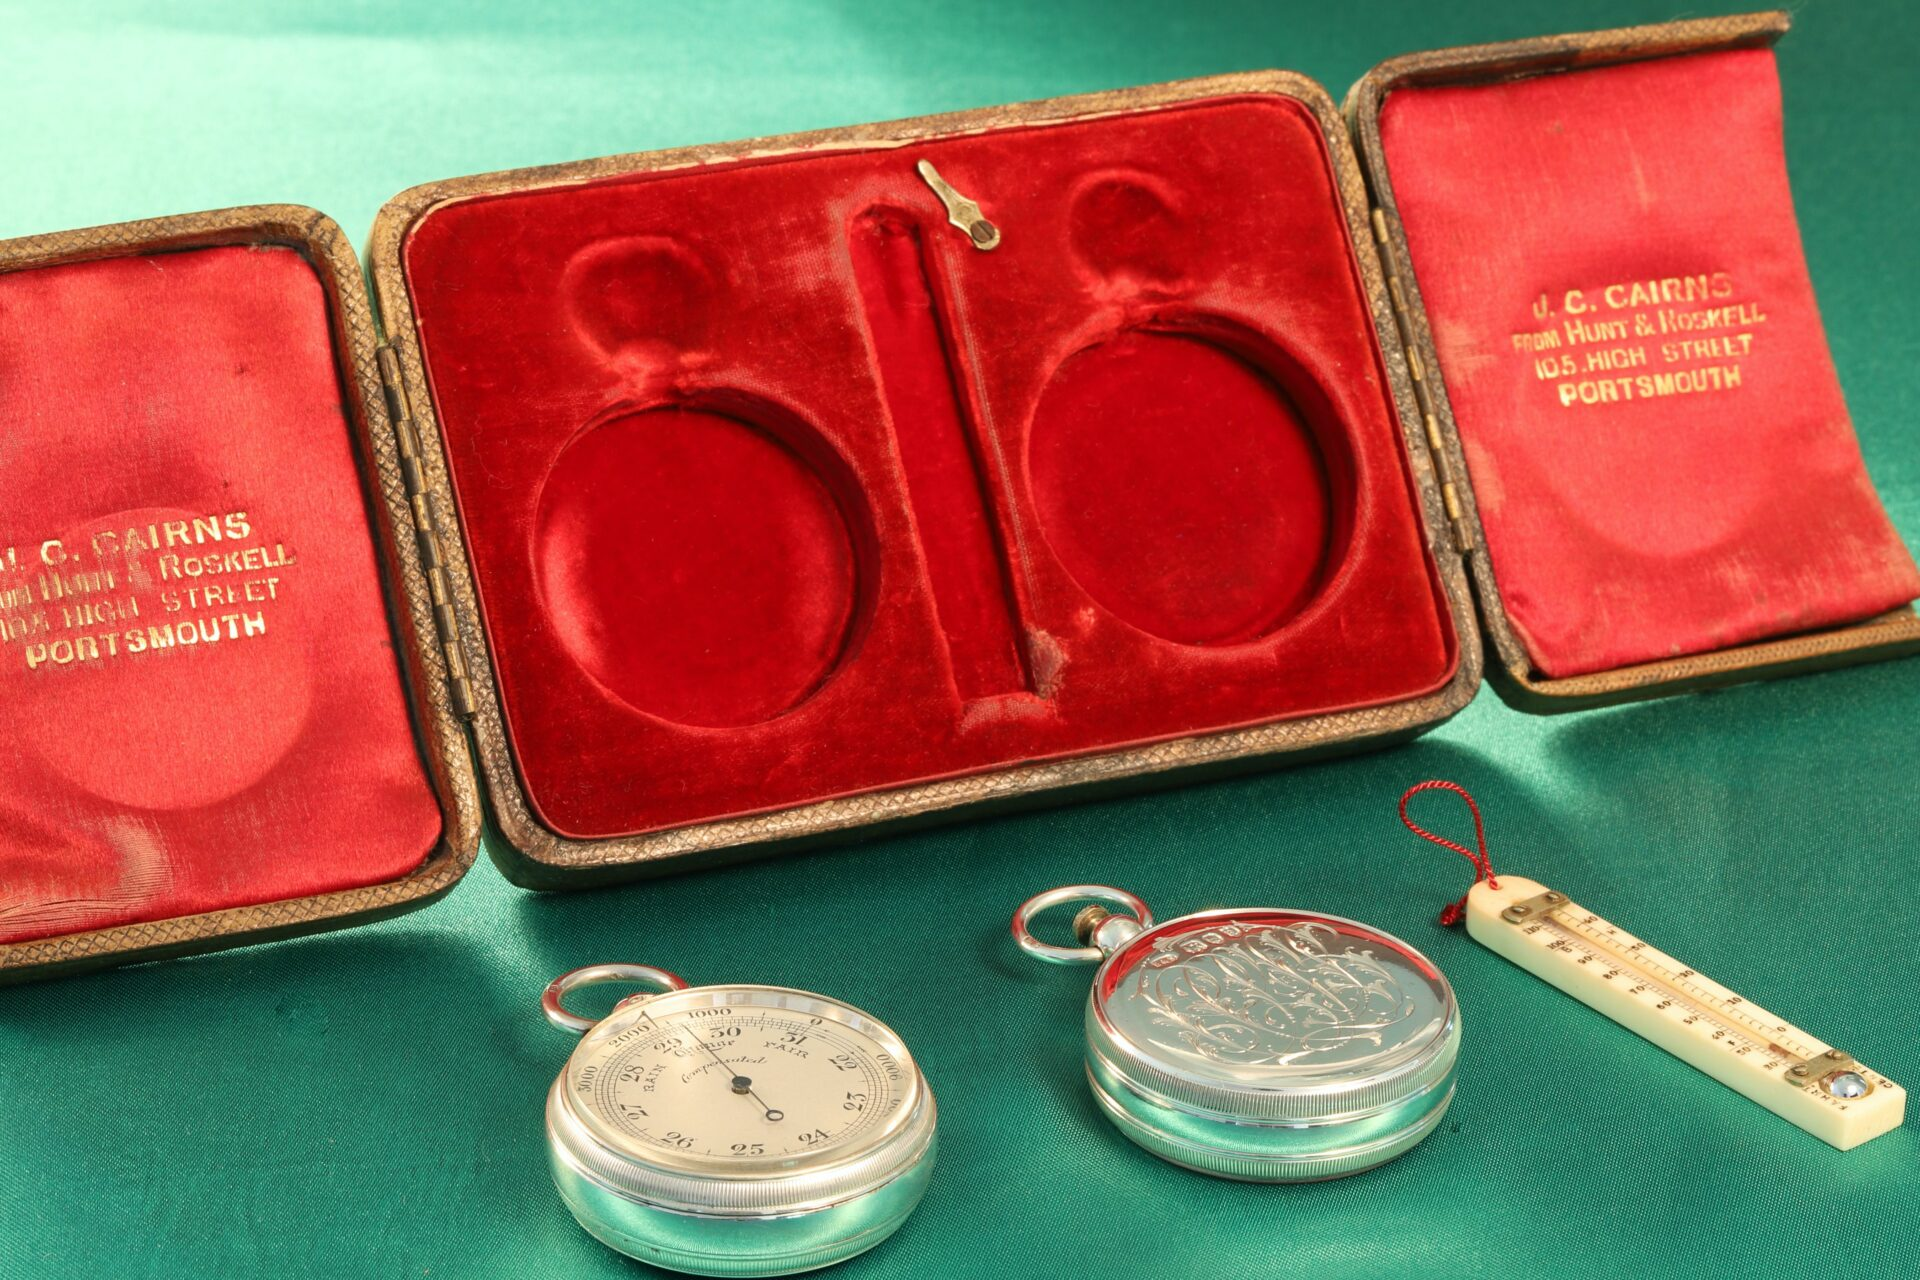 Image of pocket barometer, thermometer and compass with case from Cairns Silver Pocket Barometer Compendium c1892